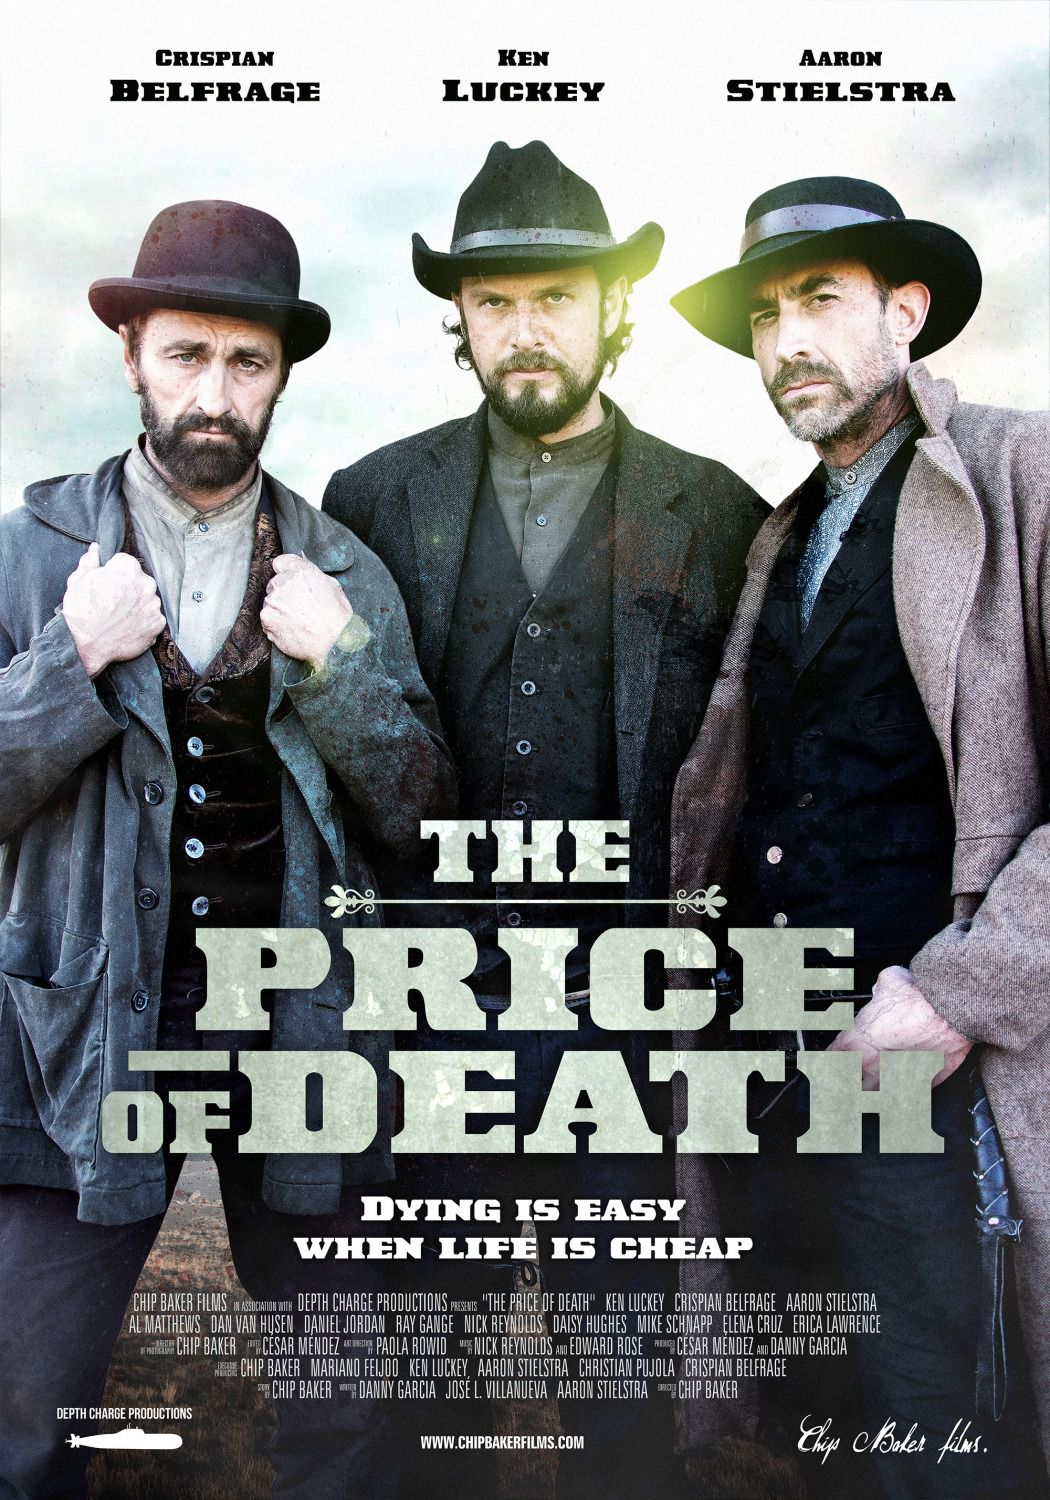 Price of Death - Crispian Belfrage - Ken Luckey - Aaron Stielstra - 2017 poster